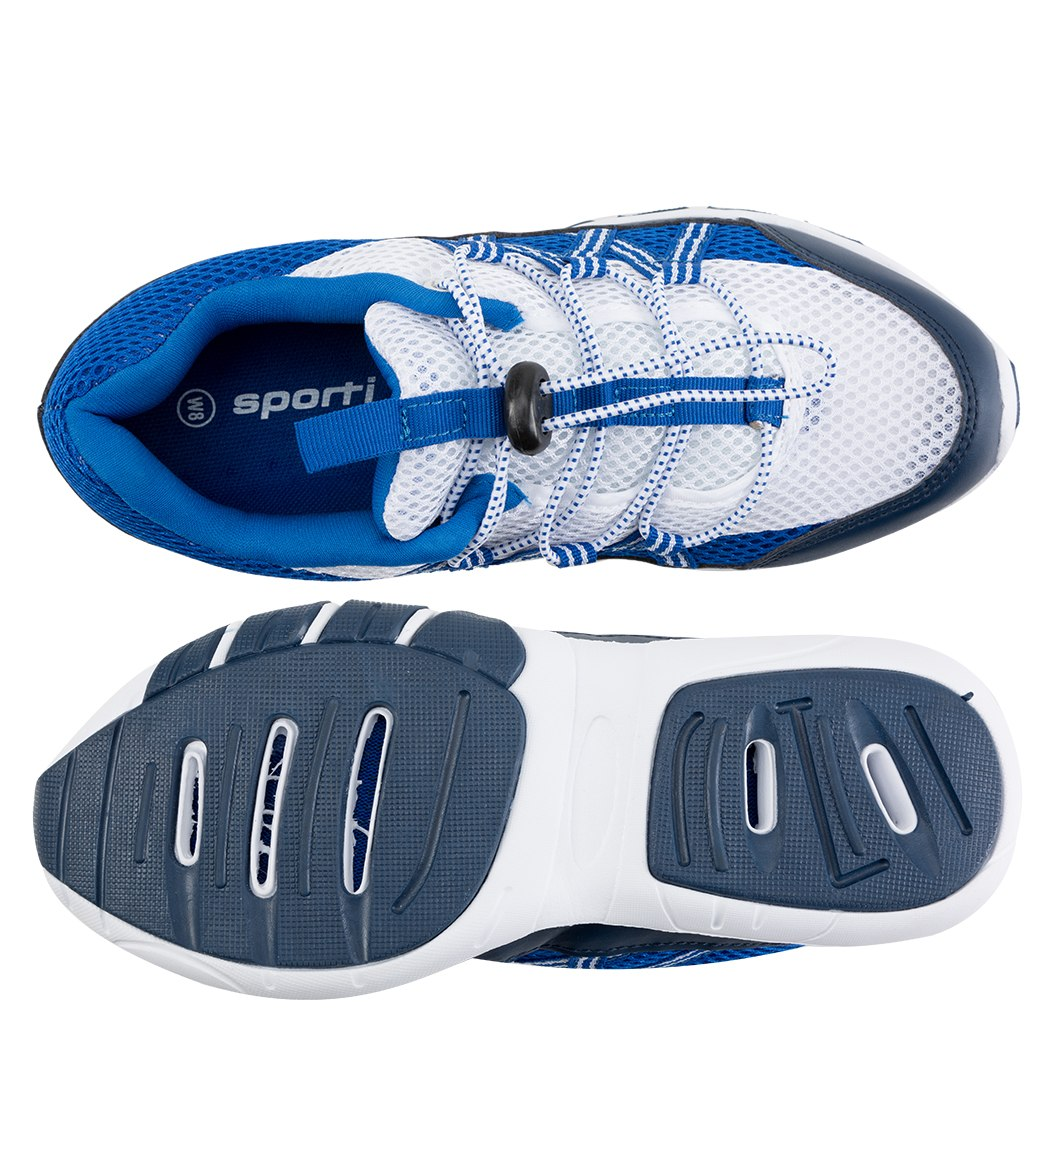 766fae51b681 Sporti Women s Trainer Water Shoes at SwimOutlet.com